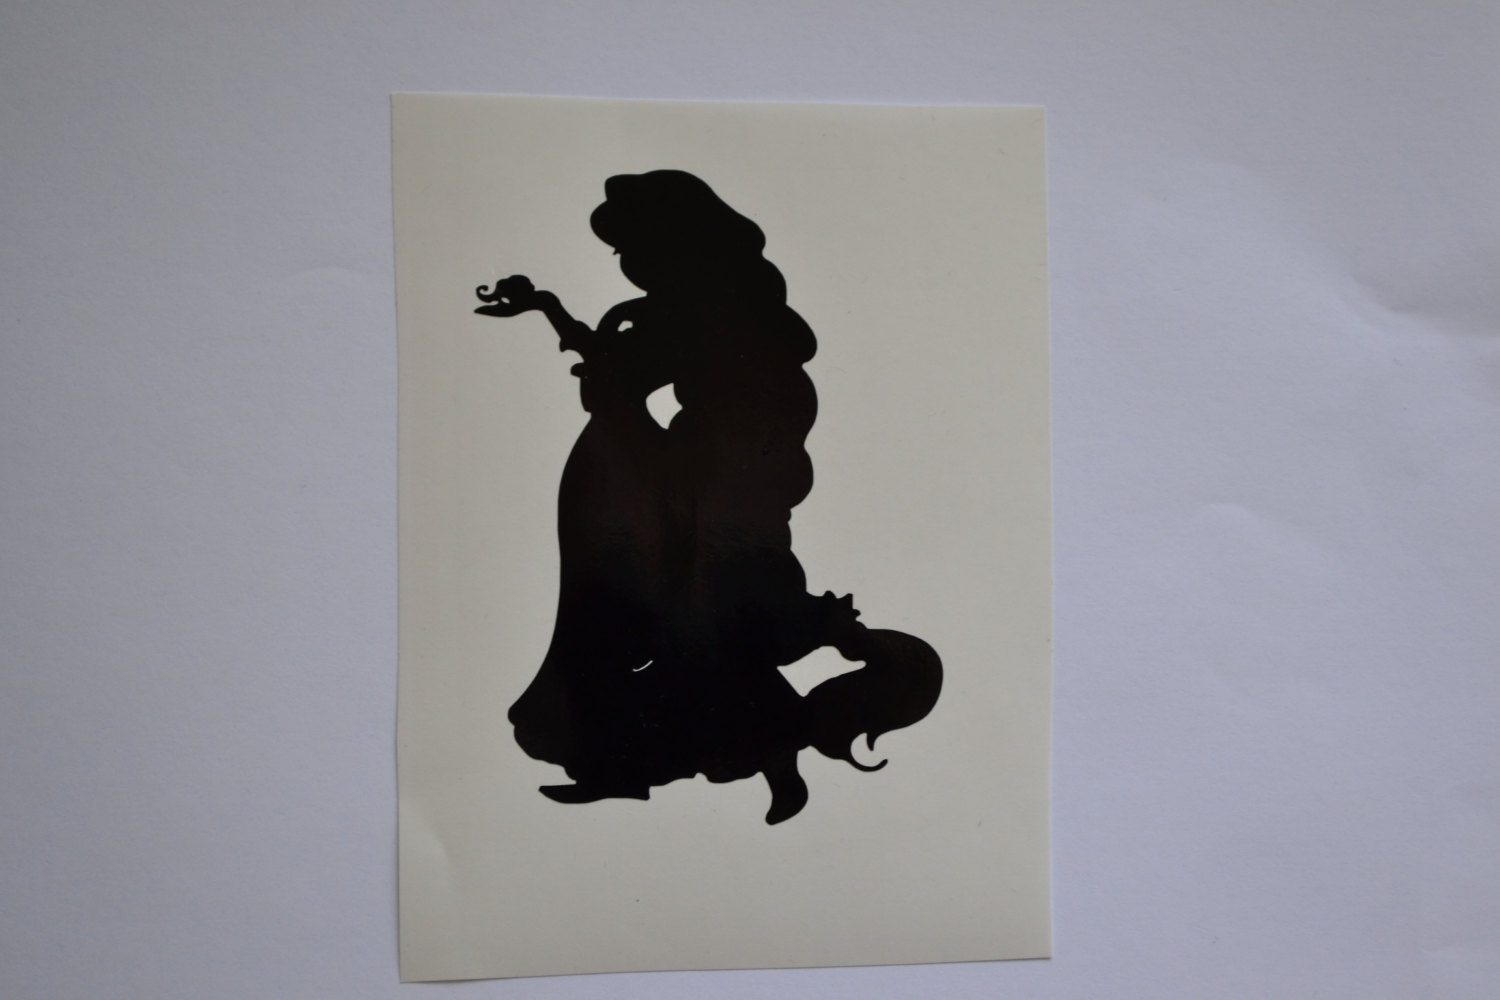 Rapunzel Silhouette Decal By Nerdvinyl On Etsy